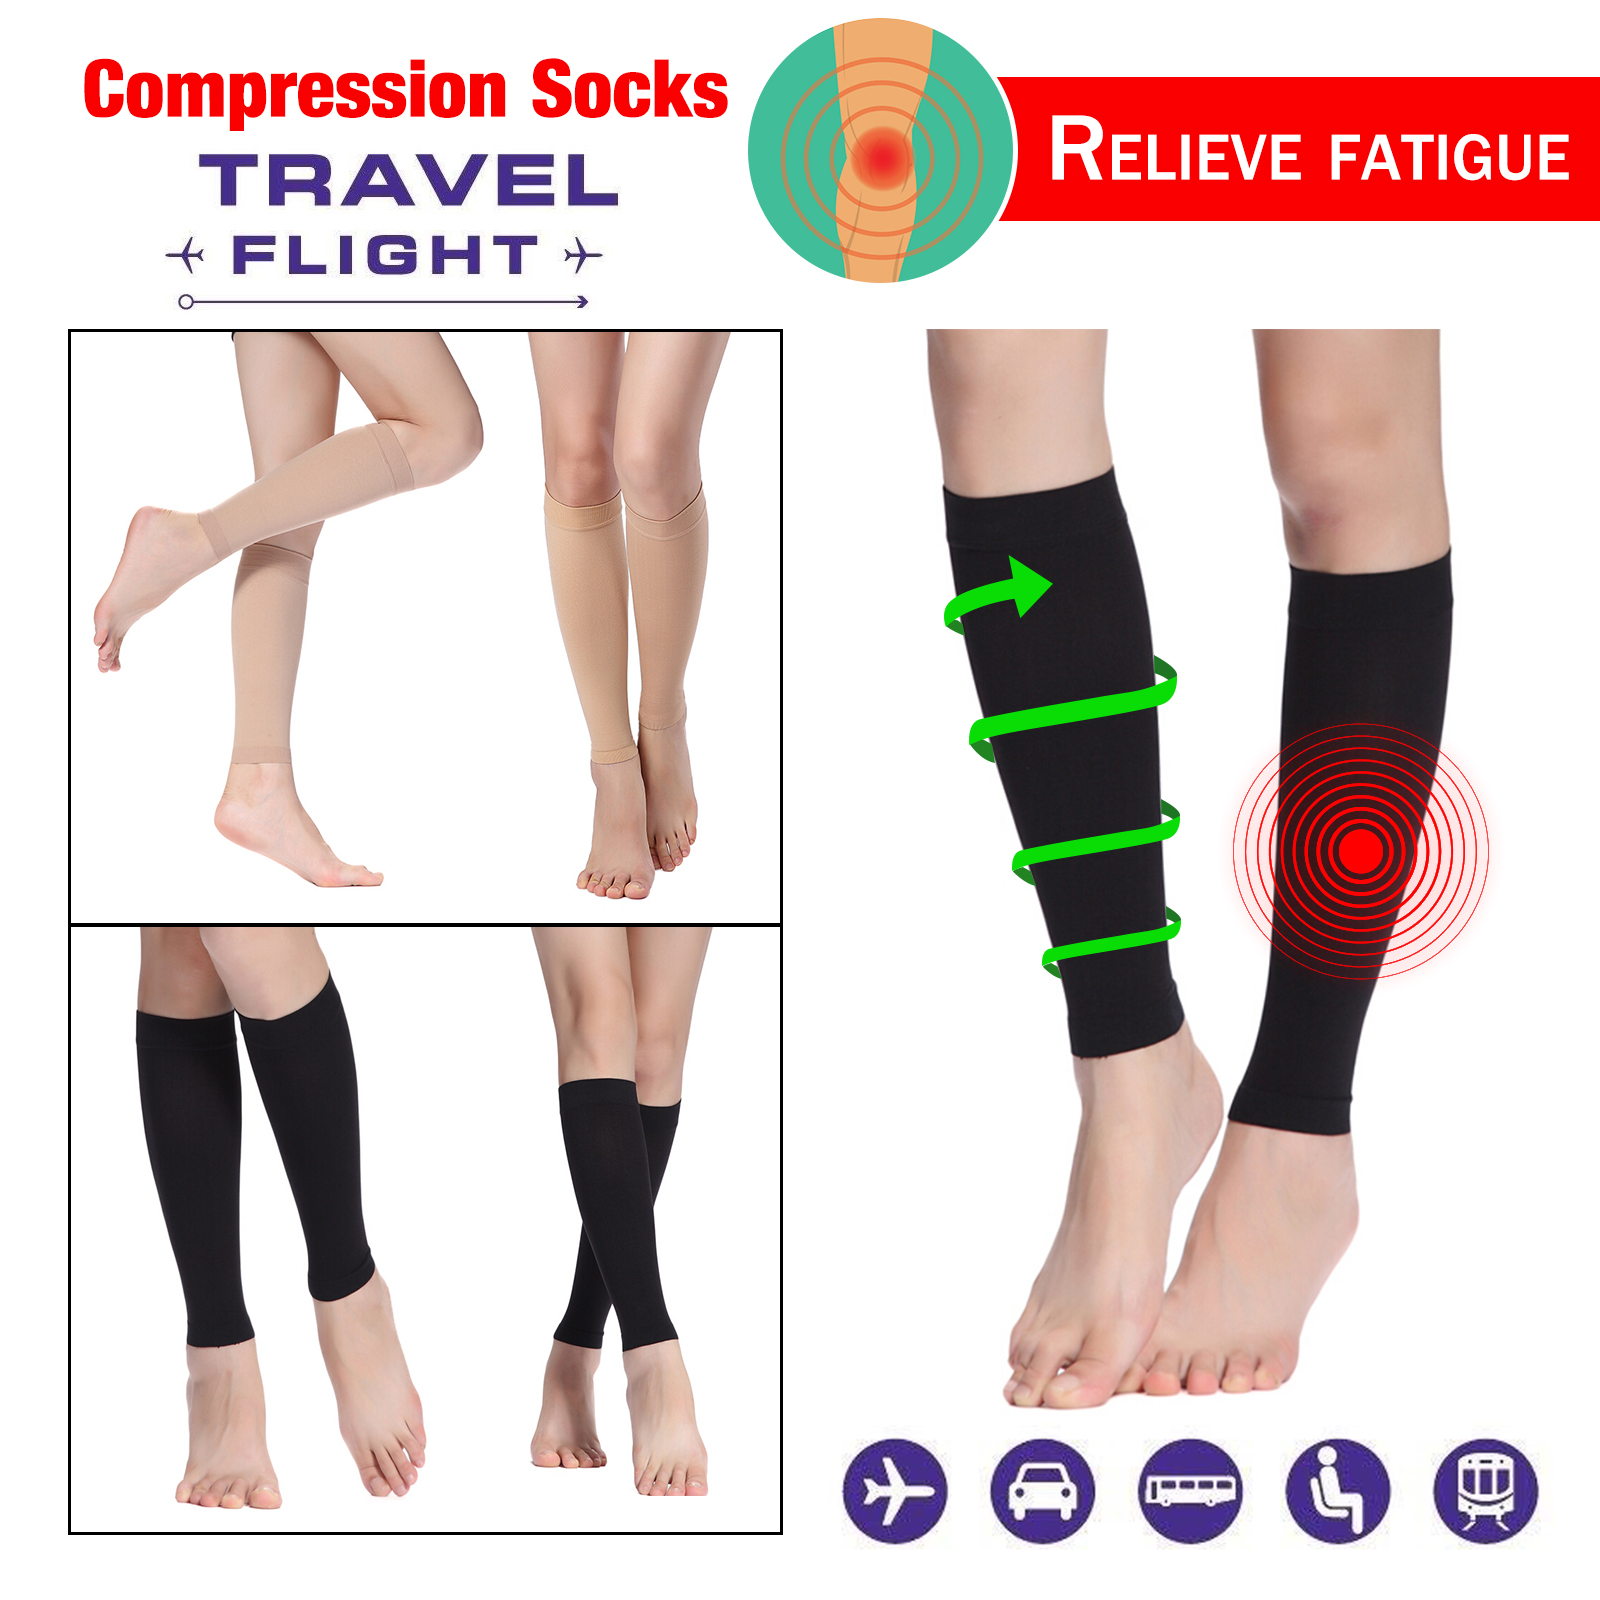 online here limited guantity brand new Details about Knee High Calf Compression Sleeve Socks Women men Running  Nurses Flying Travel